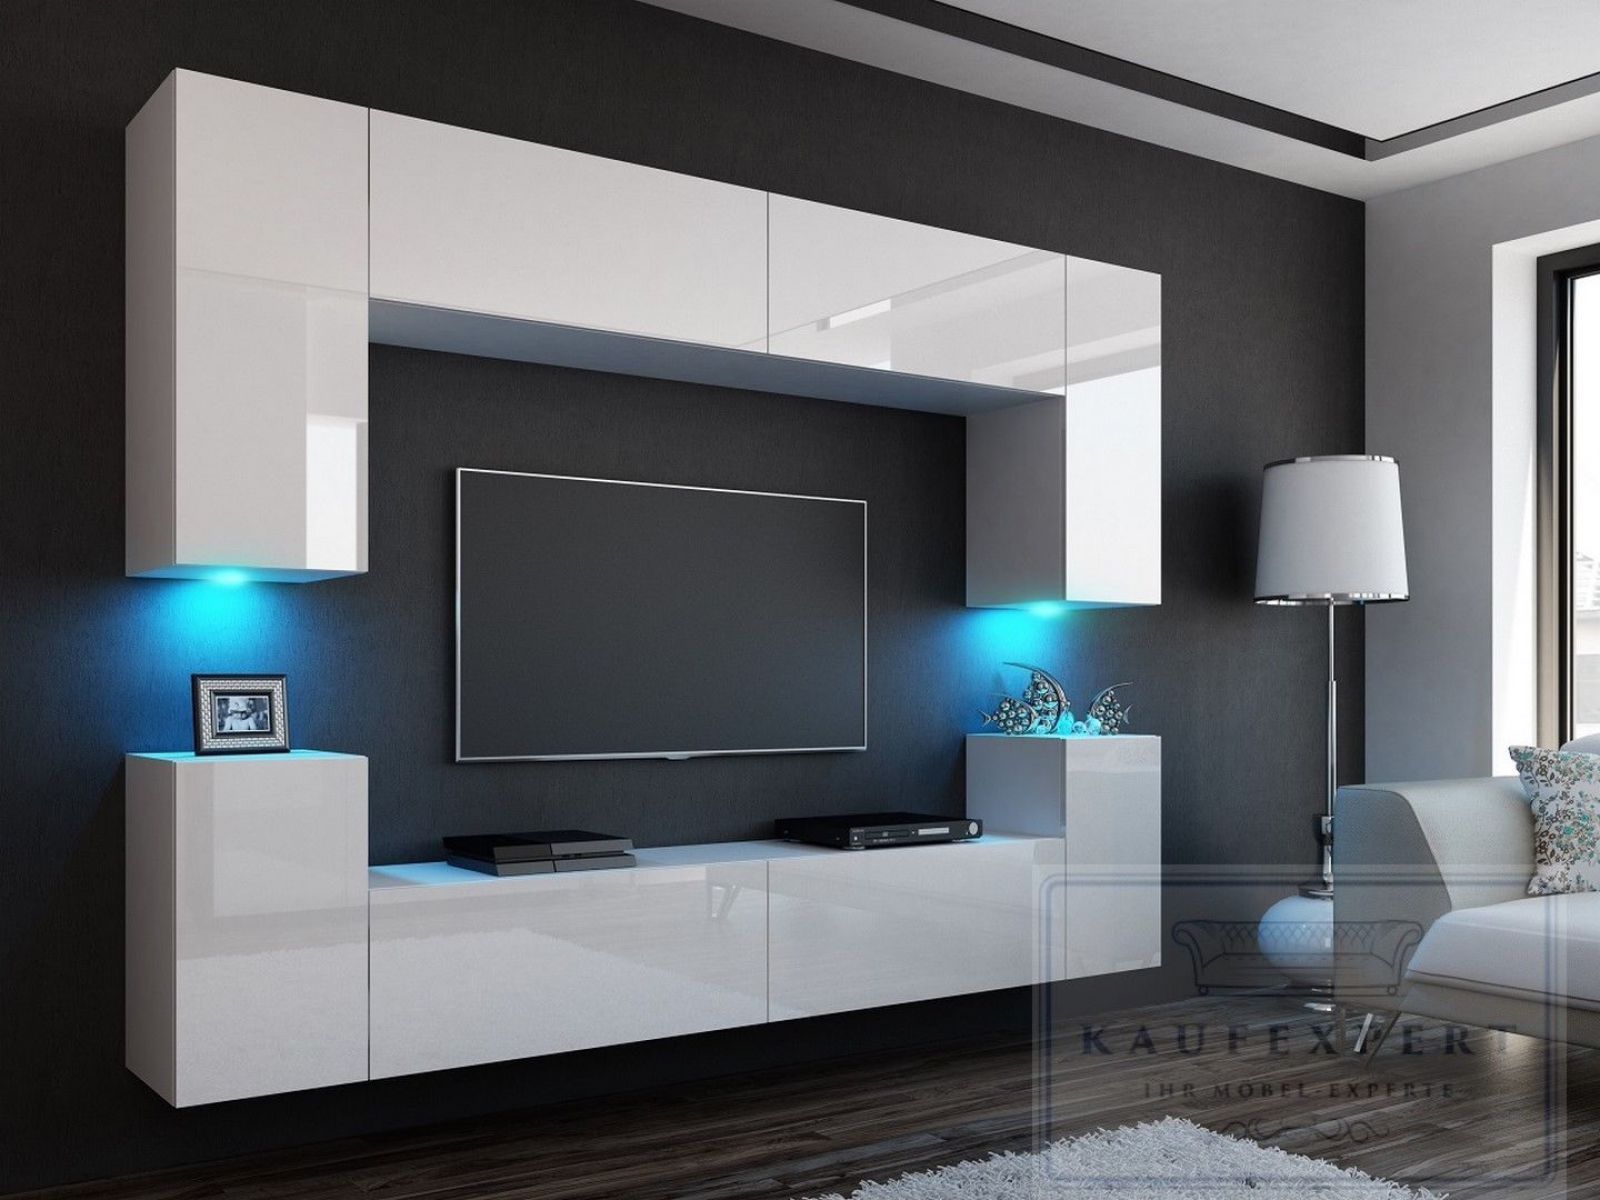 wohnwand modern weiss hochglanz. Black Bedroom Furniture Sets. Home Design Ideas